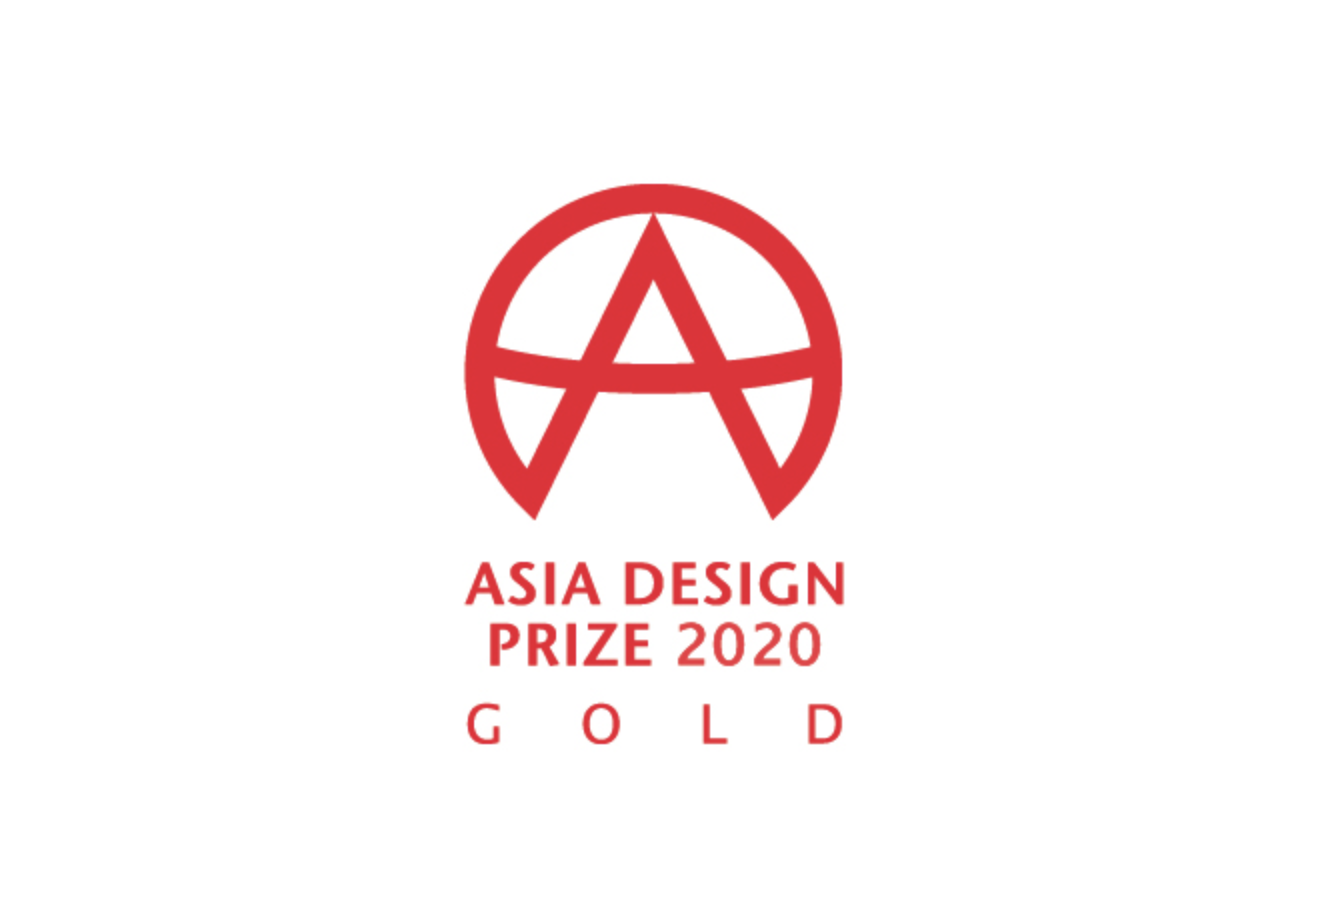 Asia design prize GOLD winner